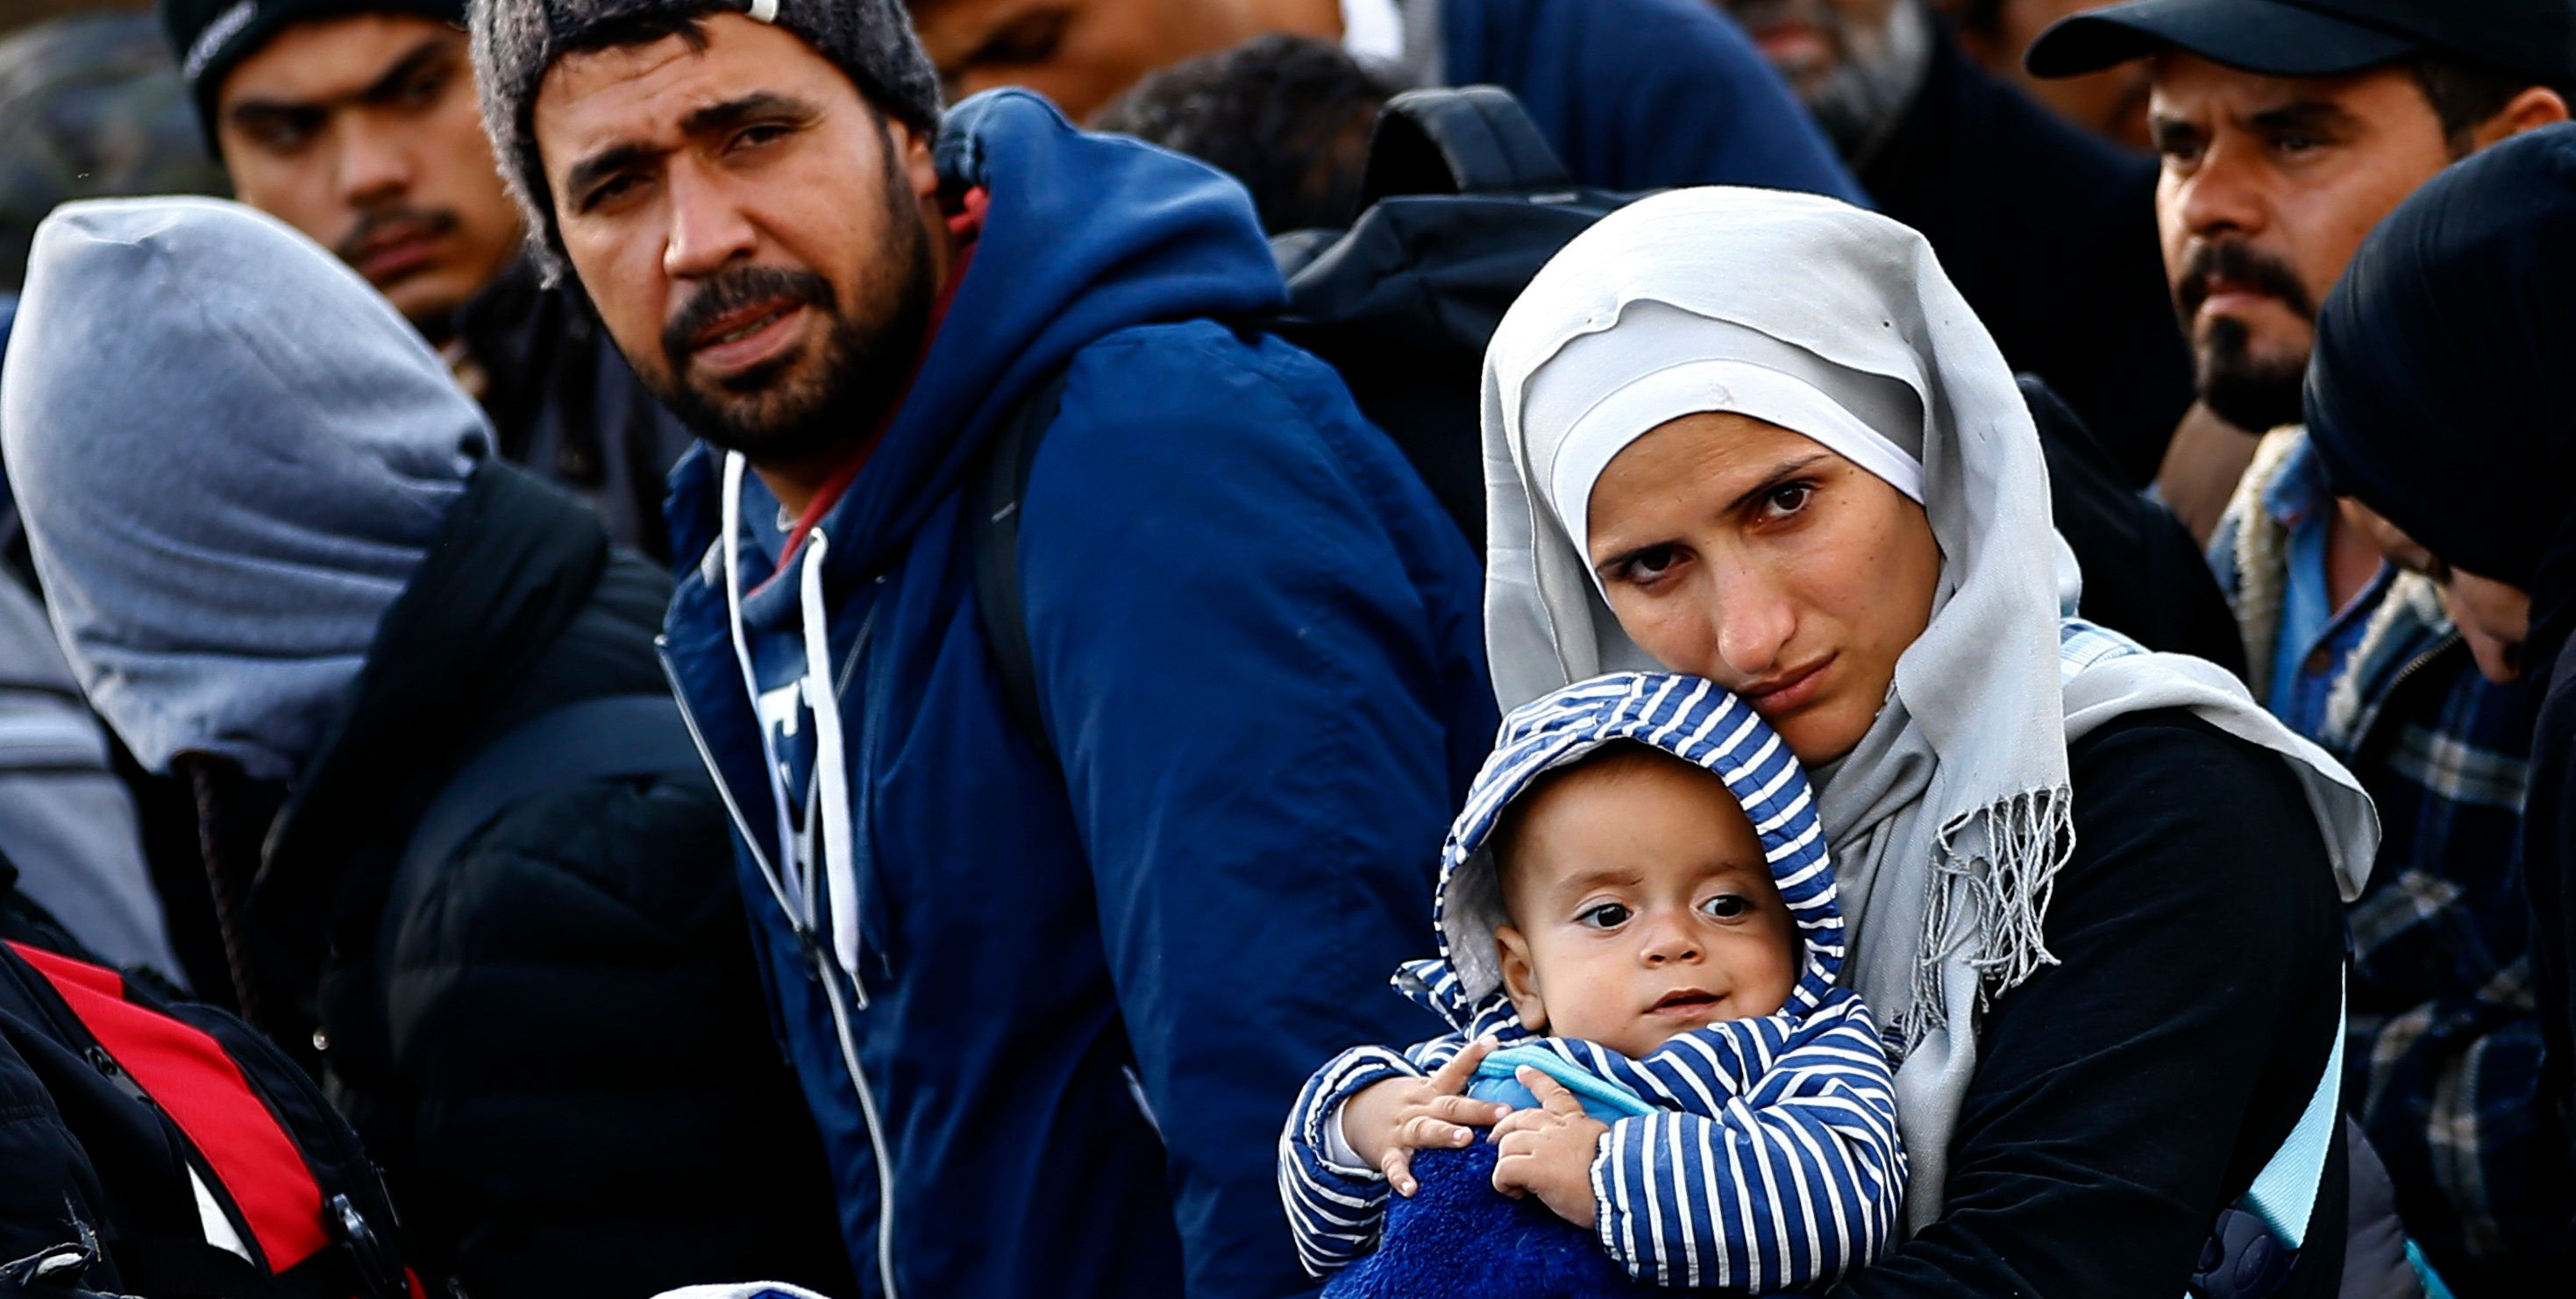 A migrant woman carries a baby as she walks towards the Austrian border from Hegyeshalom, Hungary September 29, 2015. REUTERS/Leonhard Foeger   TPX IMAGES OF THE DAY